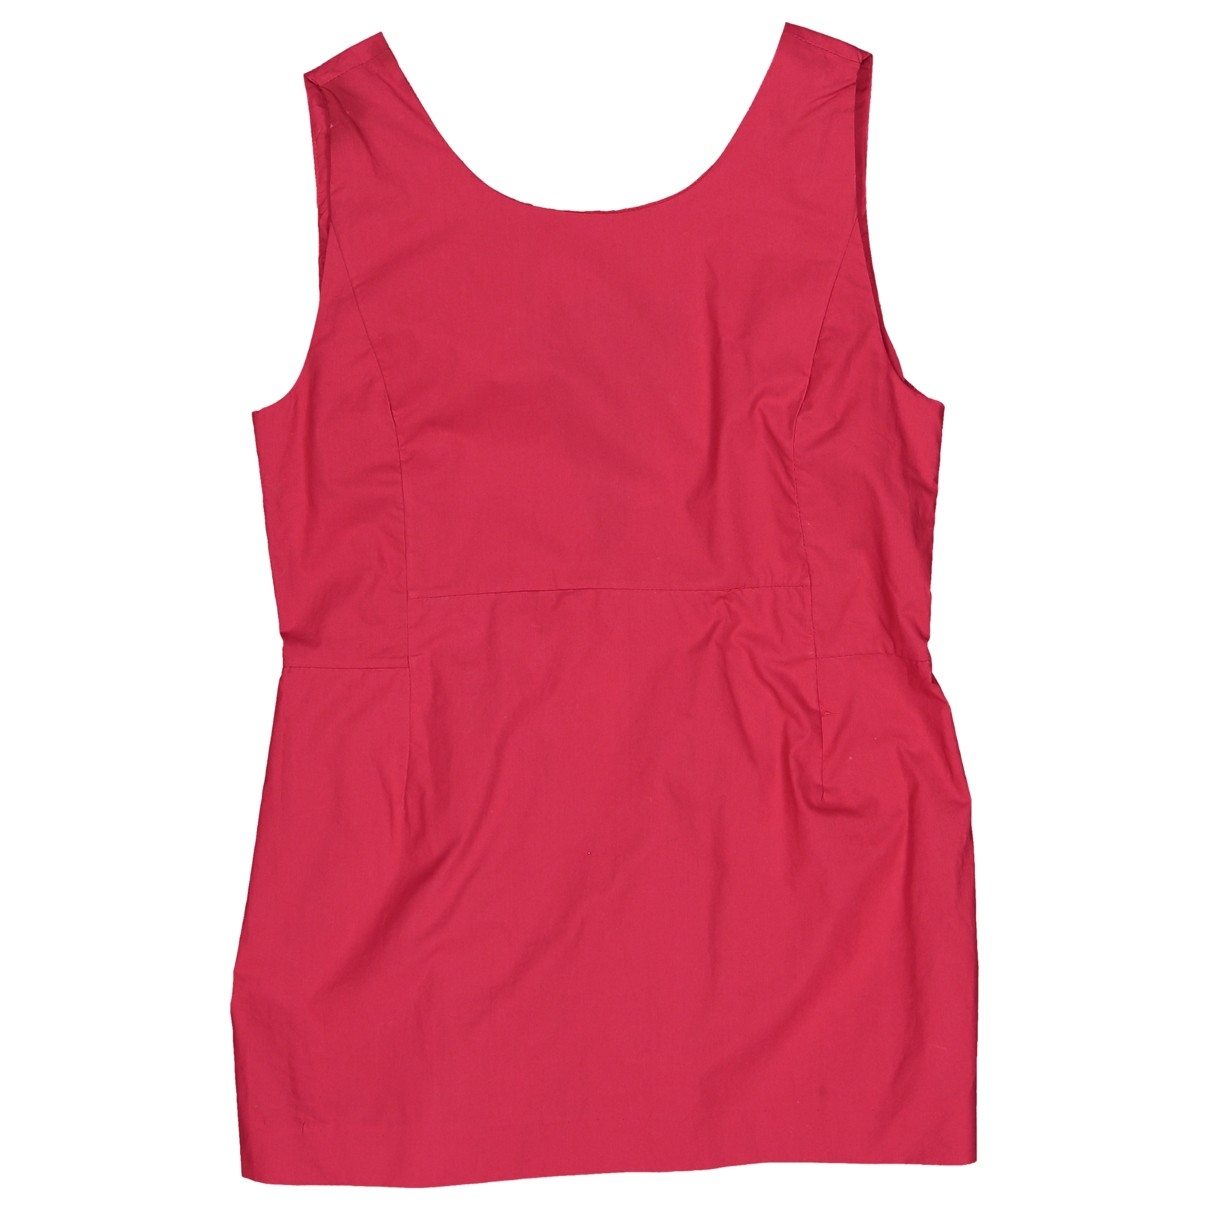 Marni \N Red Cotton  top for Women 42 IT